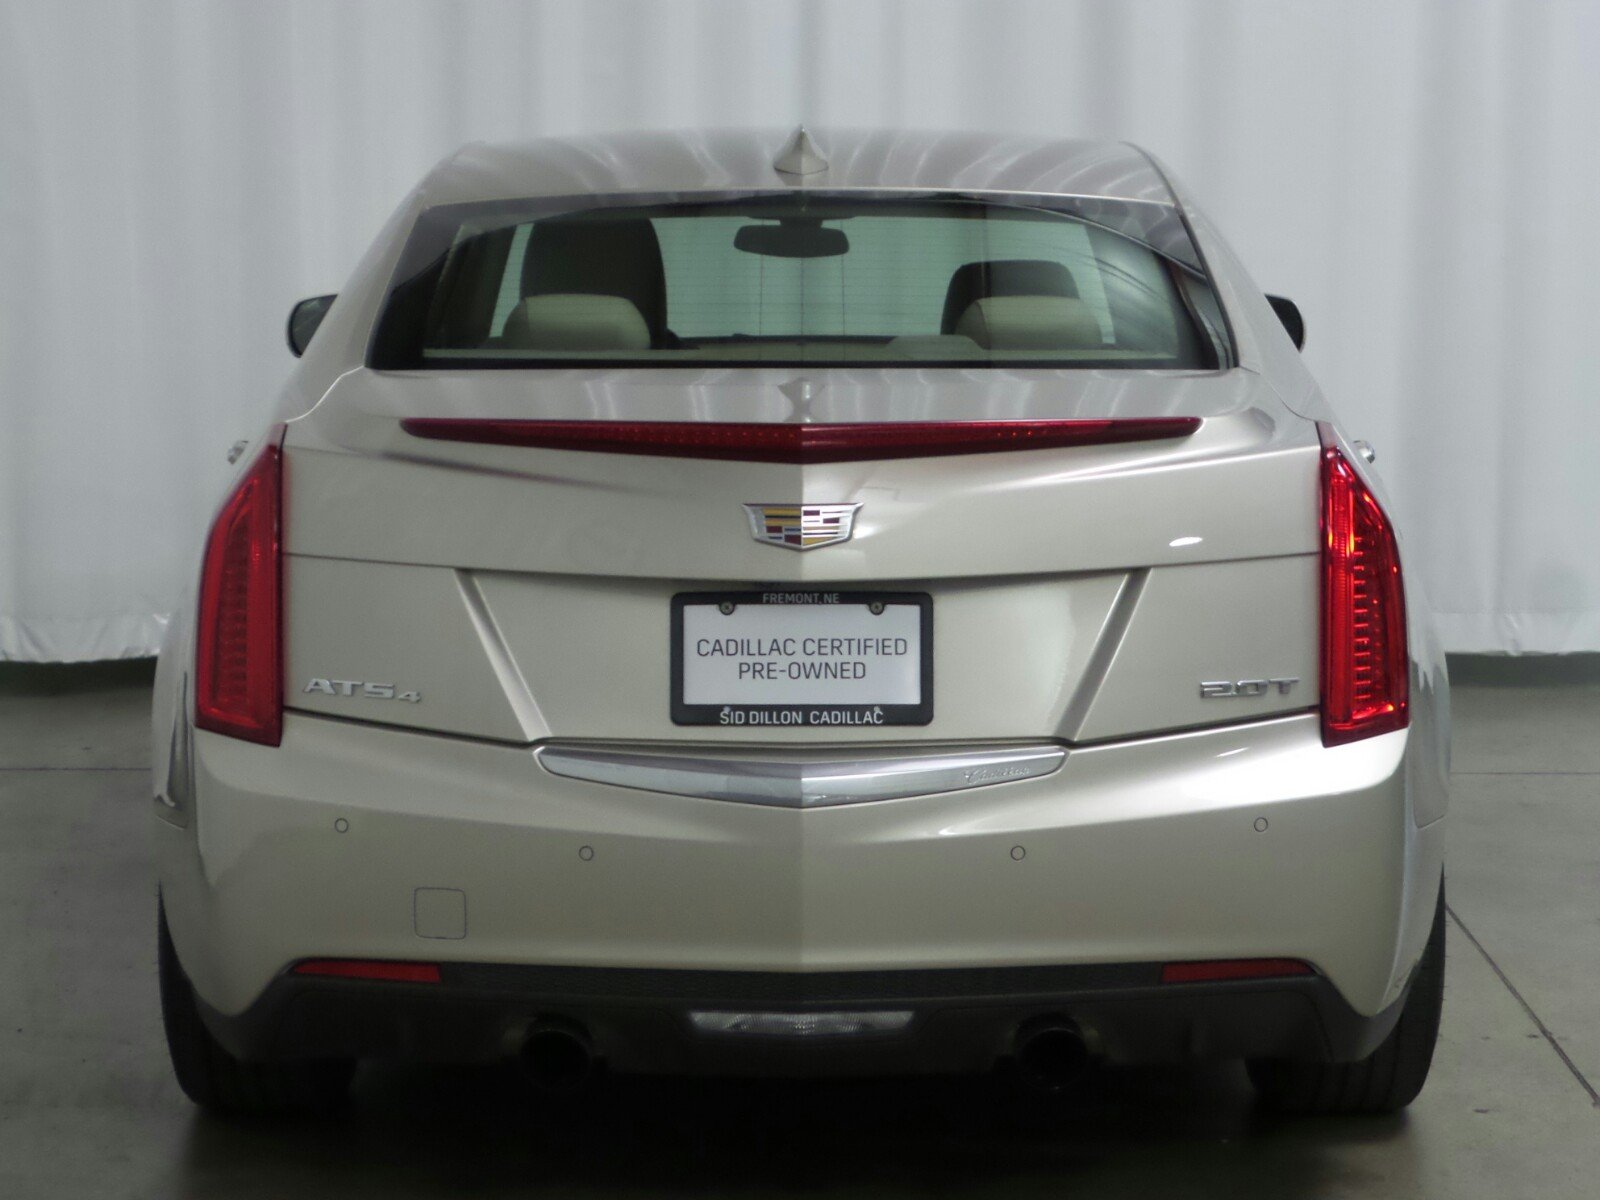 owned awd inventory platinum pre used car cadillac xts cicero